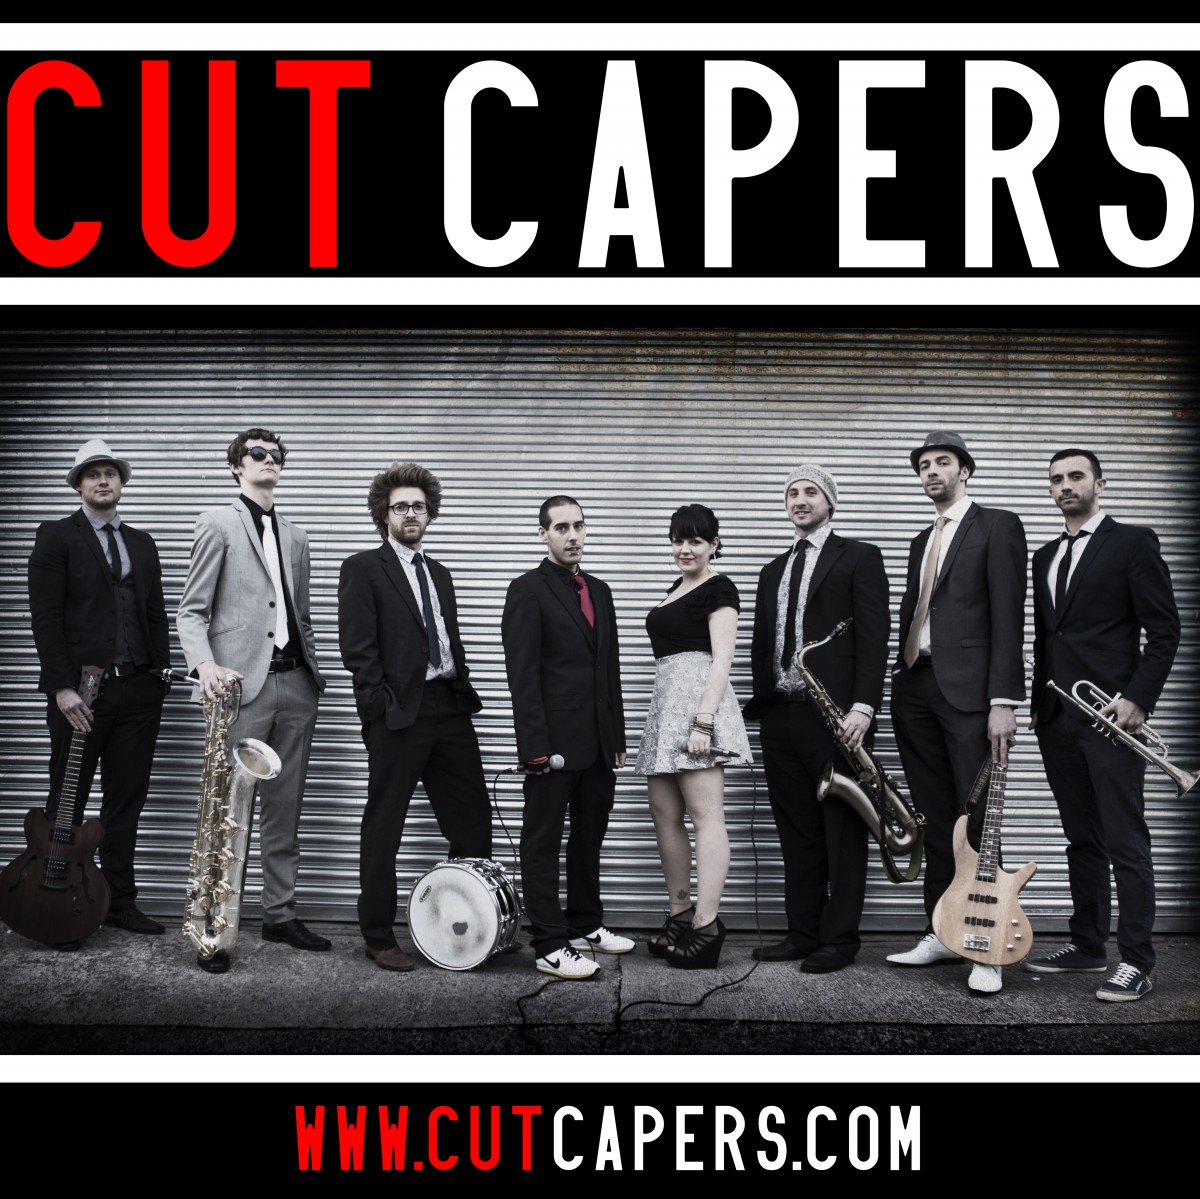 cut capers photoshoot 01